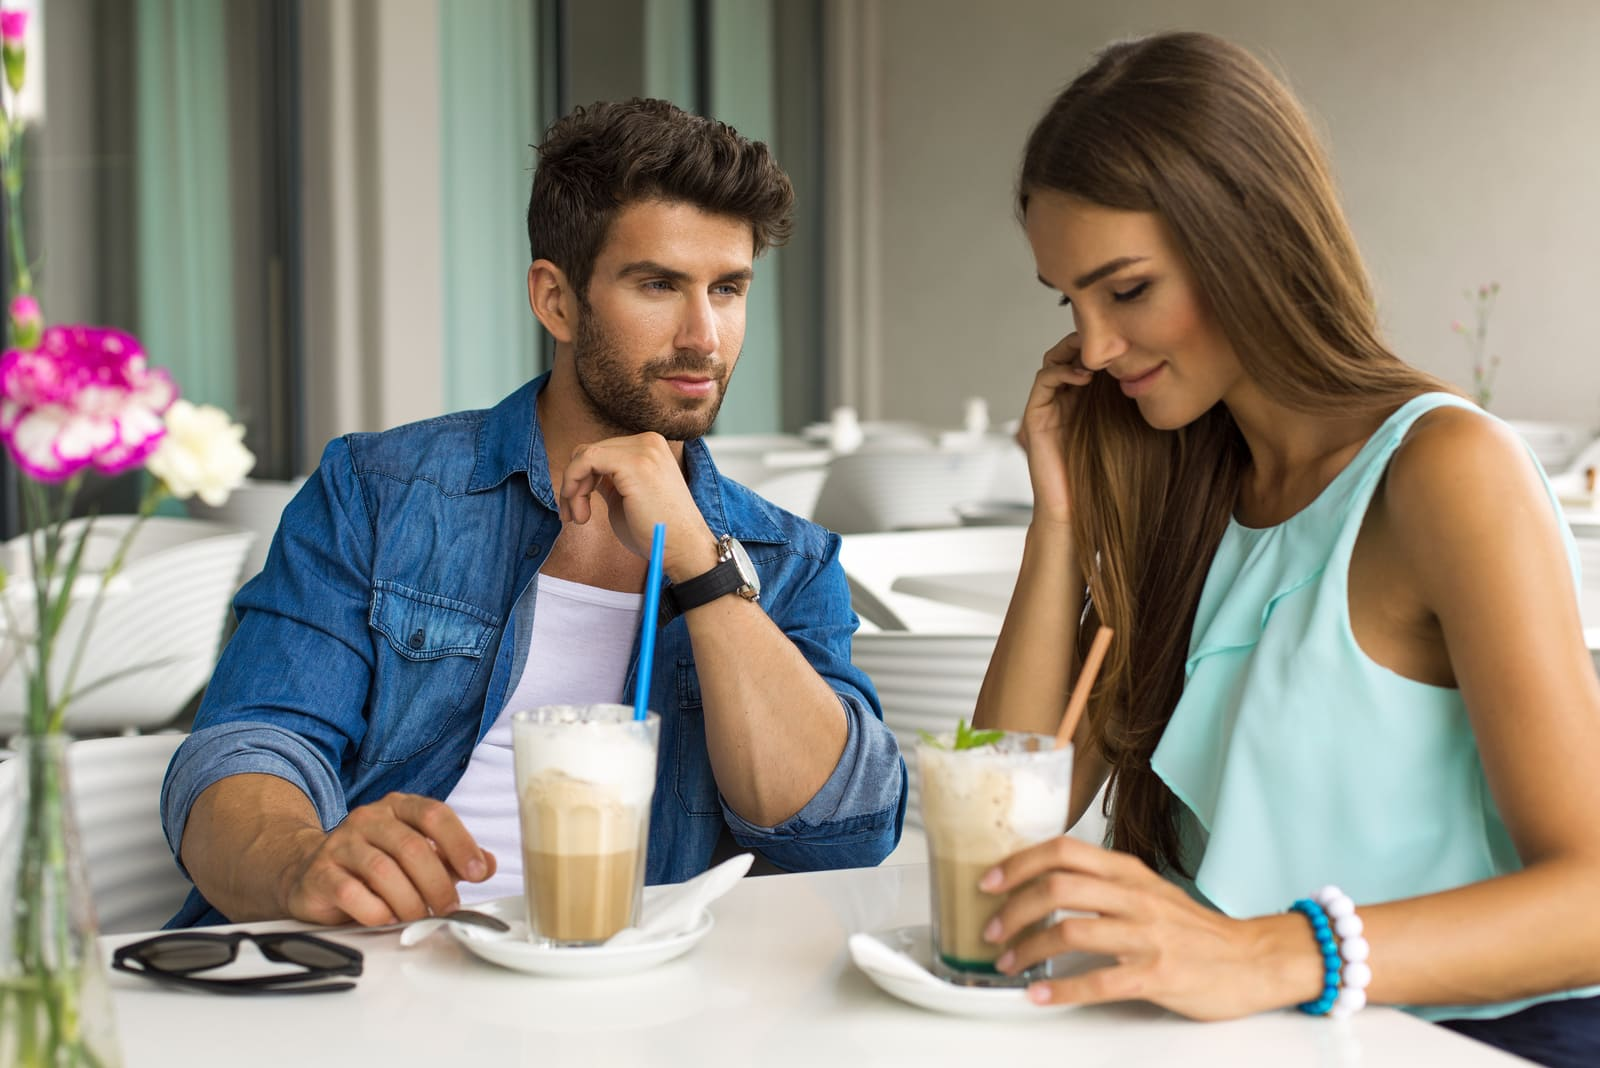 a man and a woman sit and drink hot chocolate